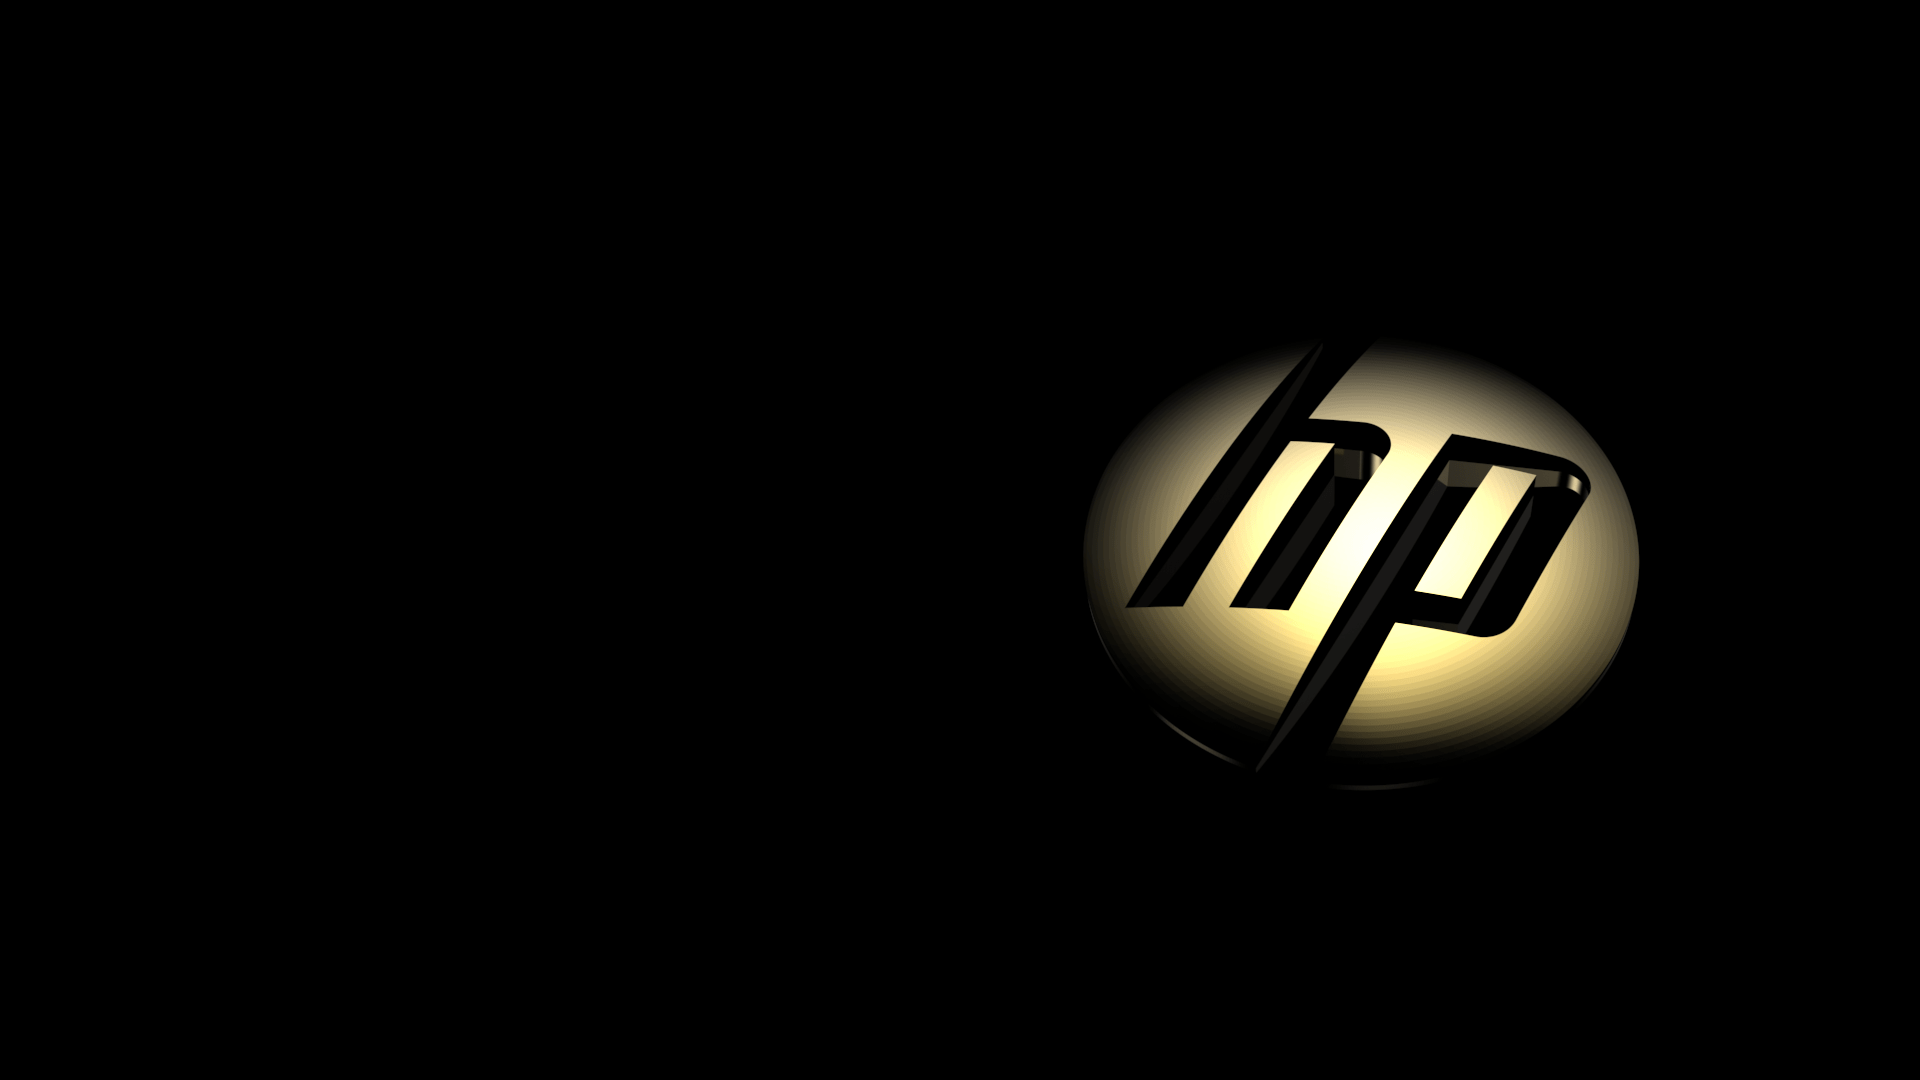 HP 3D Wallpapers Group  79   Hp 3D Wallpaper  FullHD  by AdamuIchi on DeviantArt